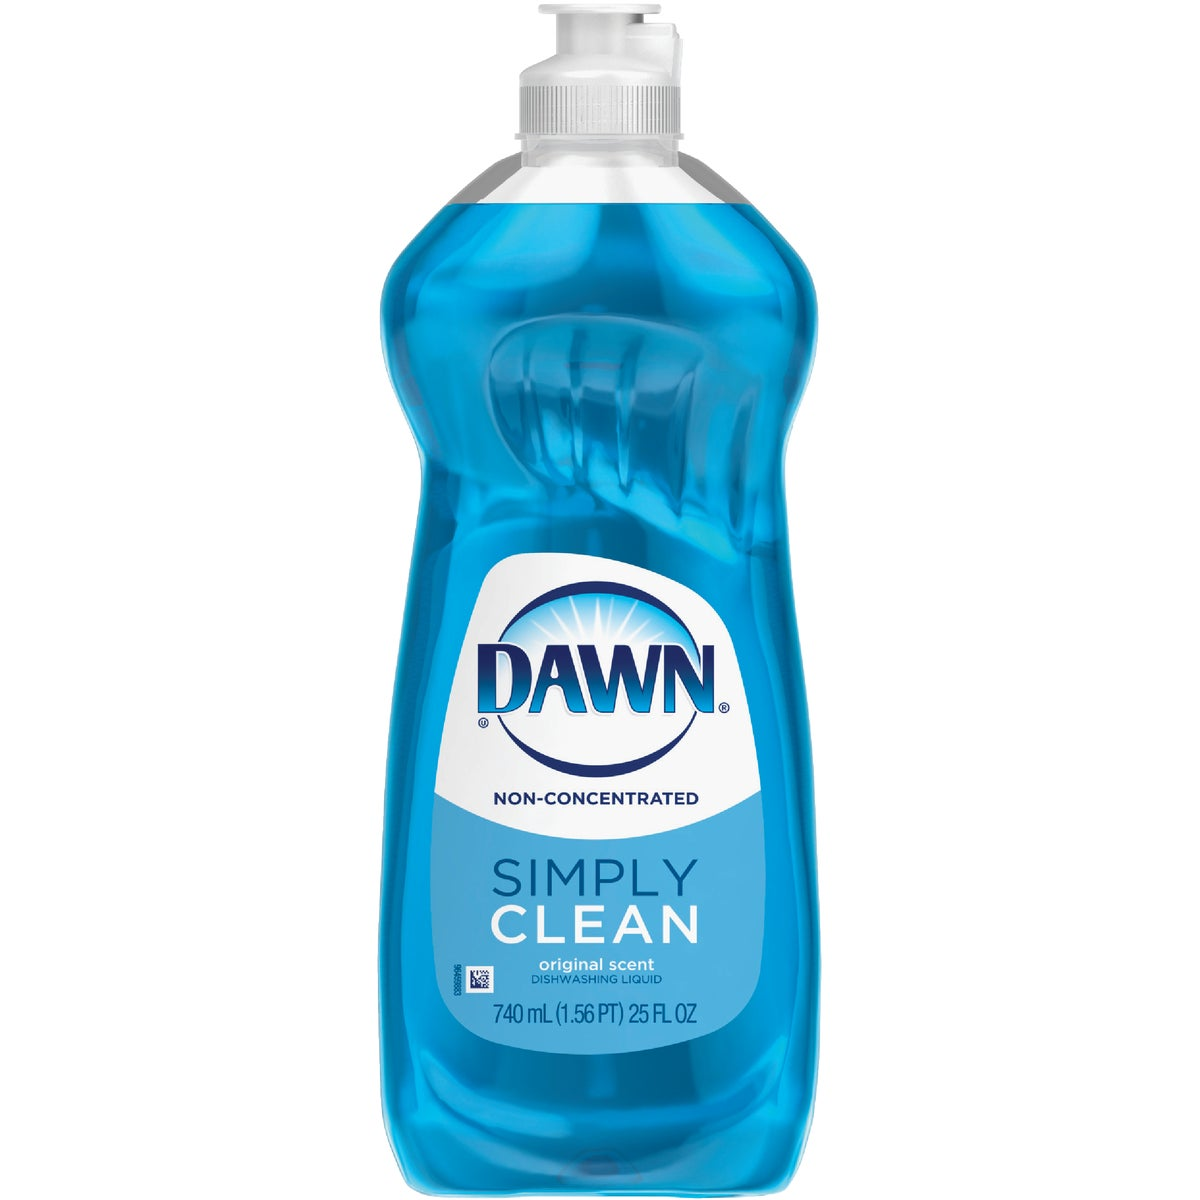 25Oz Dawn Liq Dish Soap